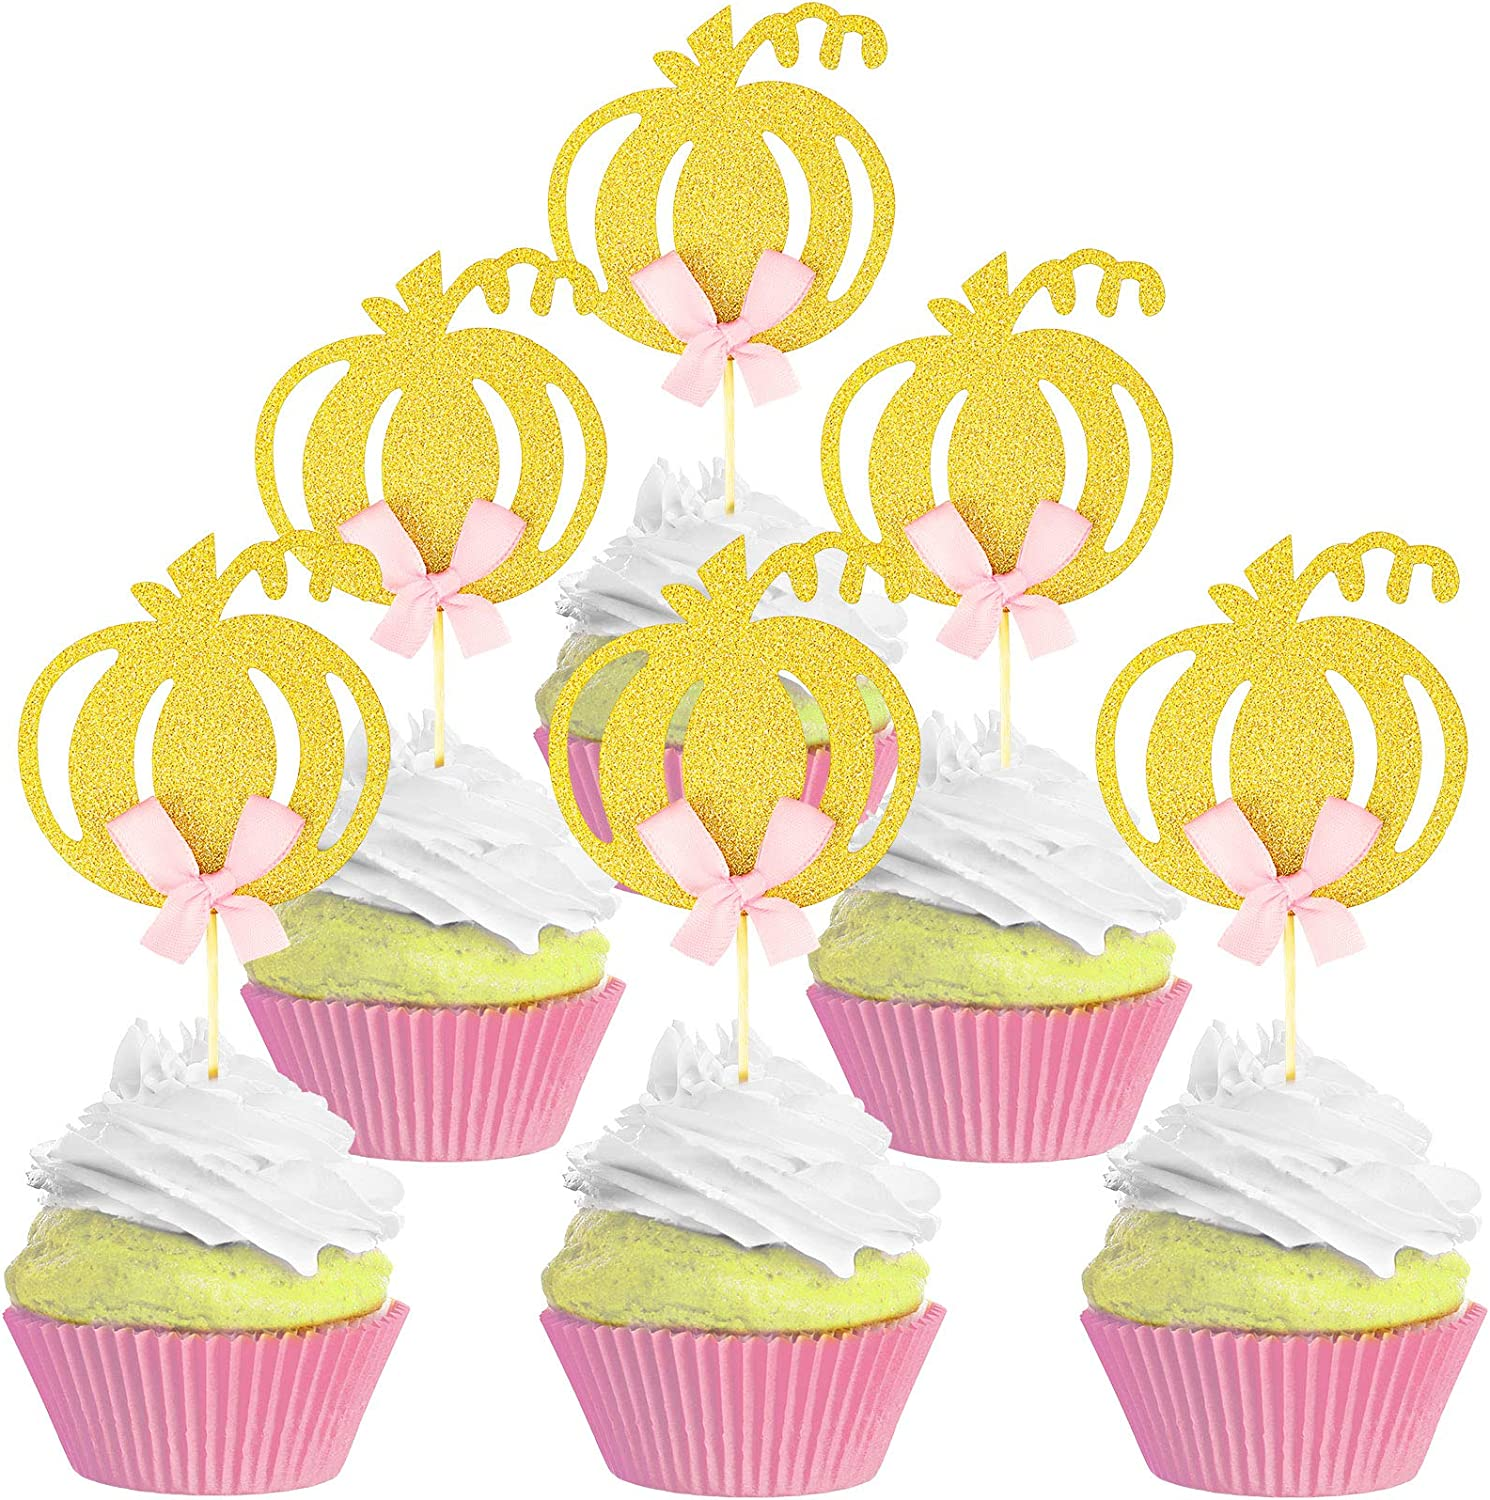 Boao 36 Pieces Pumpkin Cupcake Toppers Pumpkin Cake Topper Pumpkin Food Pick Fall Theme Cupcake Picks for Thanksgiving Birthday Baby Shower Party Supplies